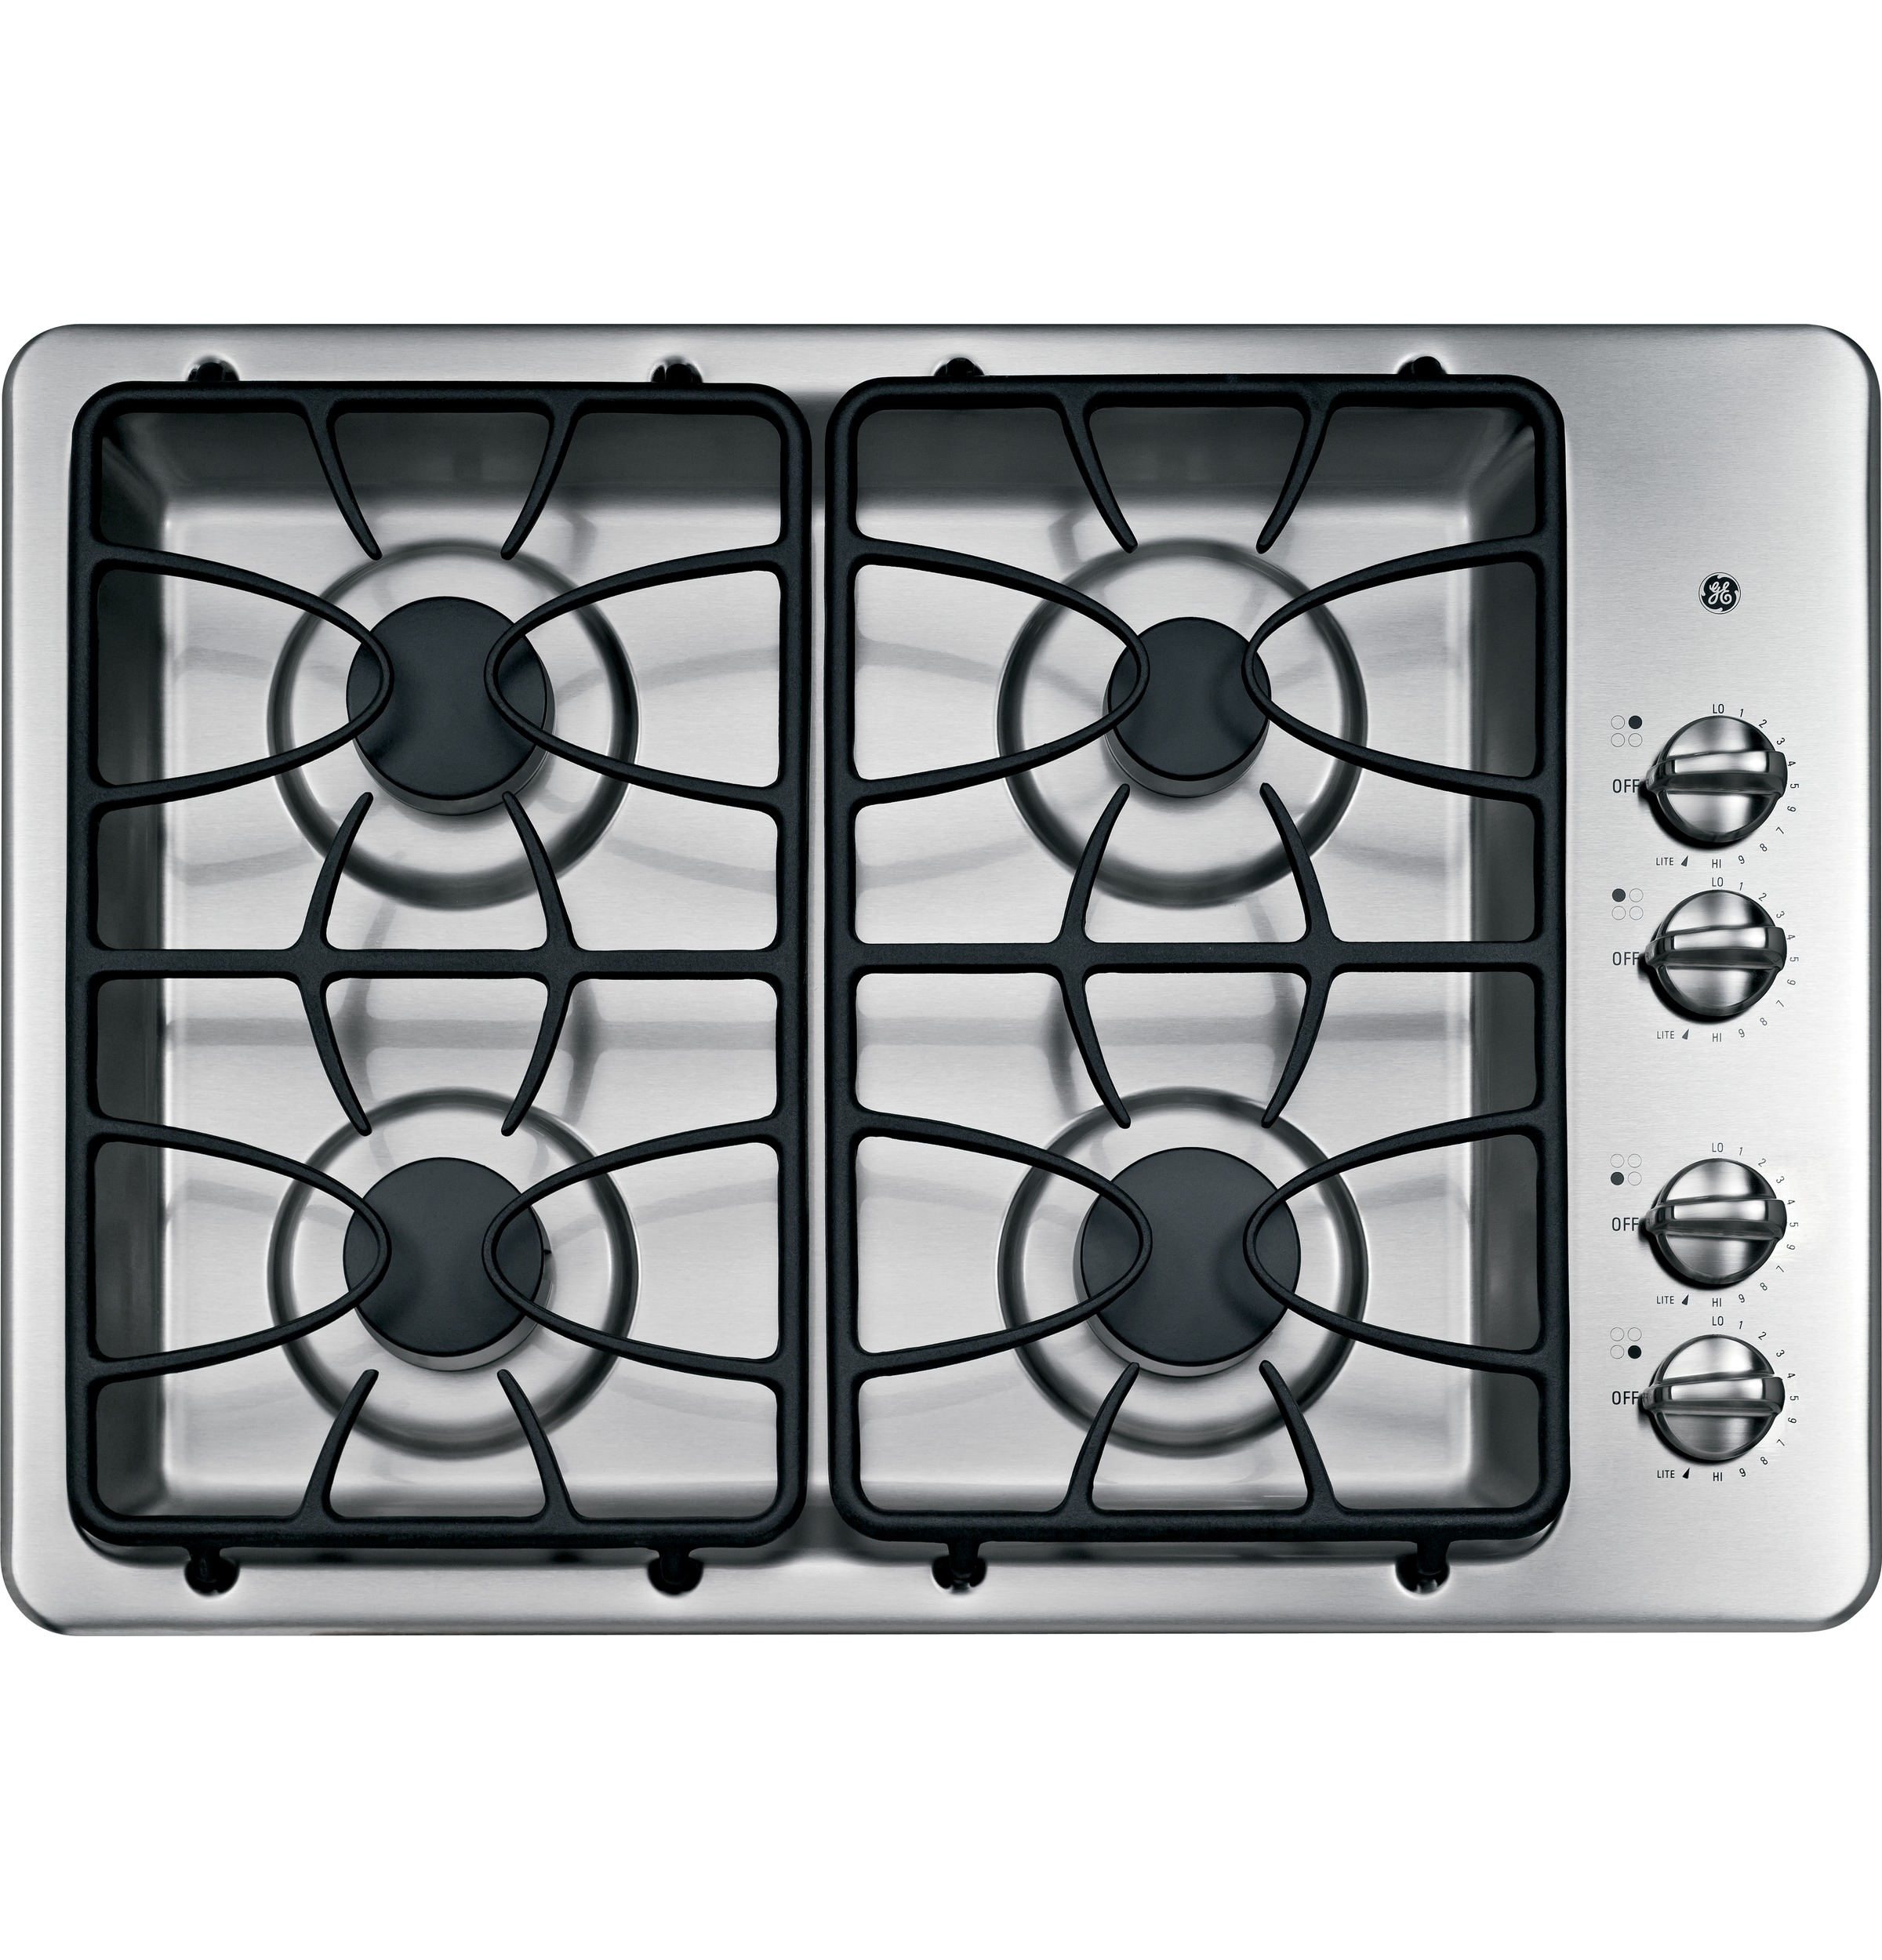 Kitchen gas stove top view - Product Image